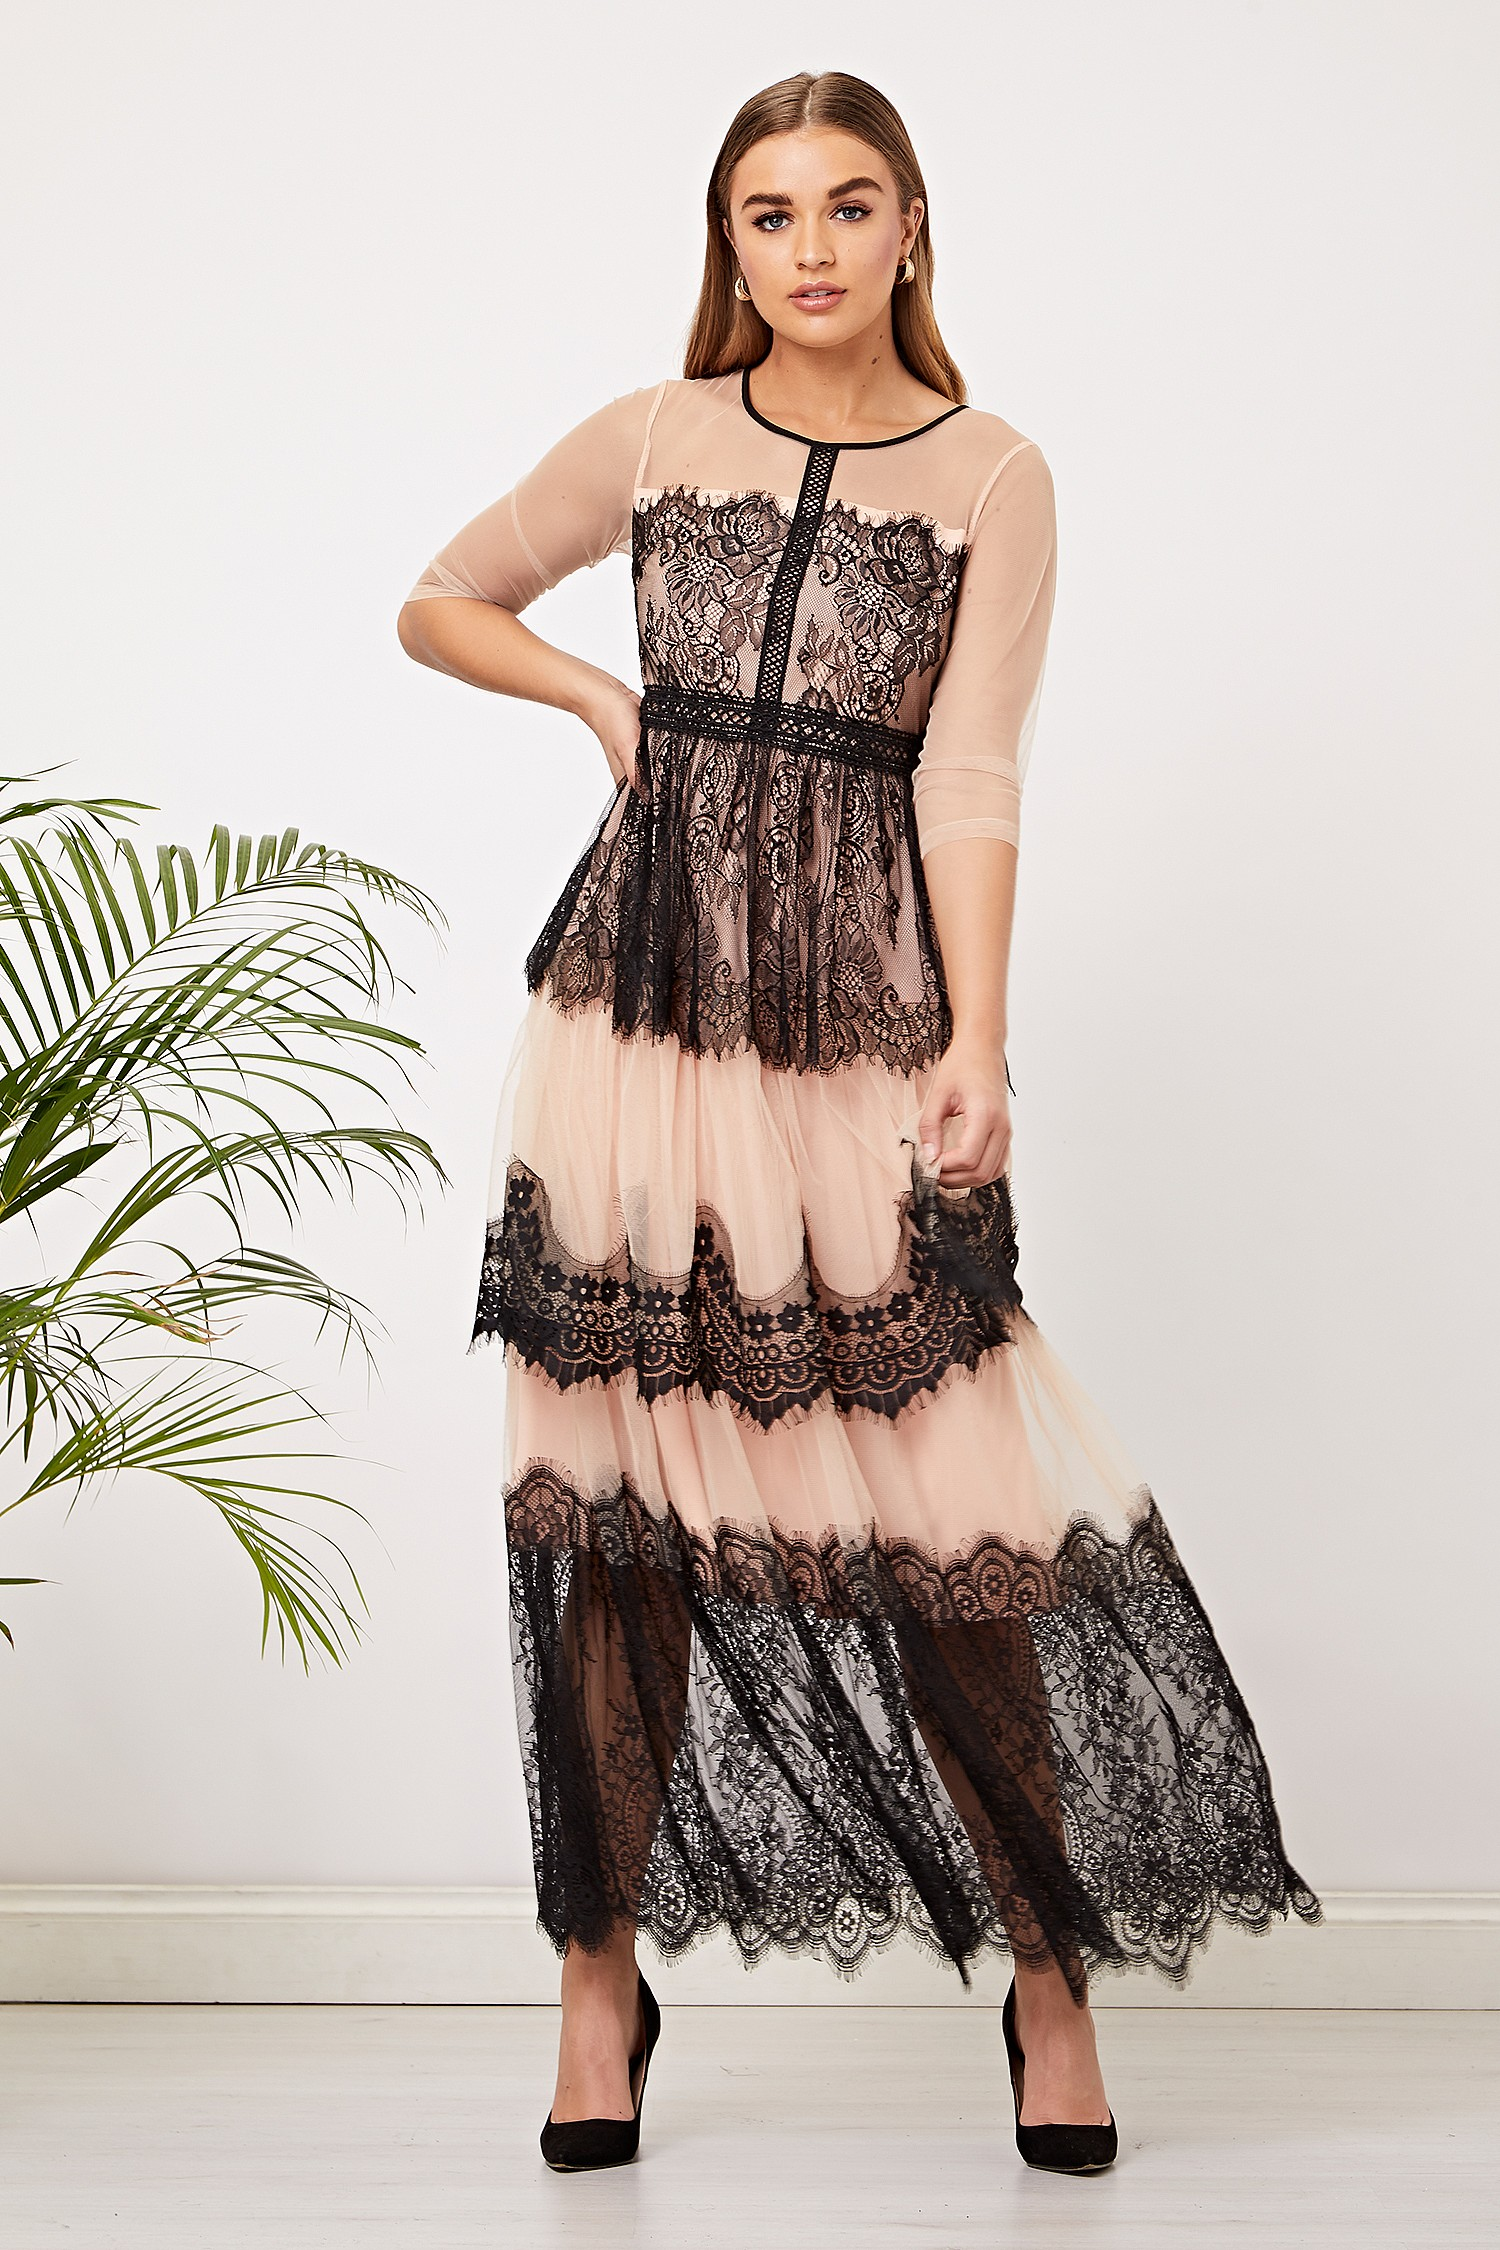 Image of Beige and Black Lace Maxi Dress Apparel and Accessories - Clothing - Dresses female ANGELEYE Collection 5055452037321